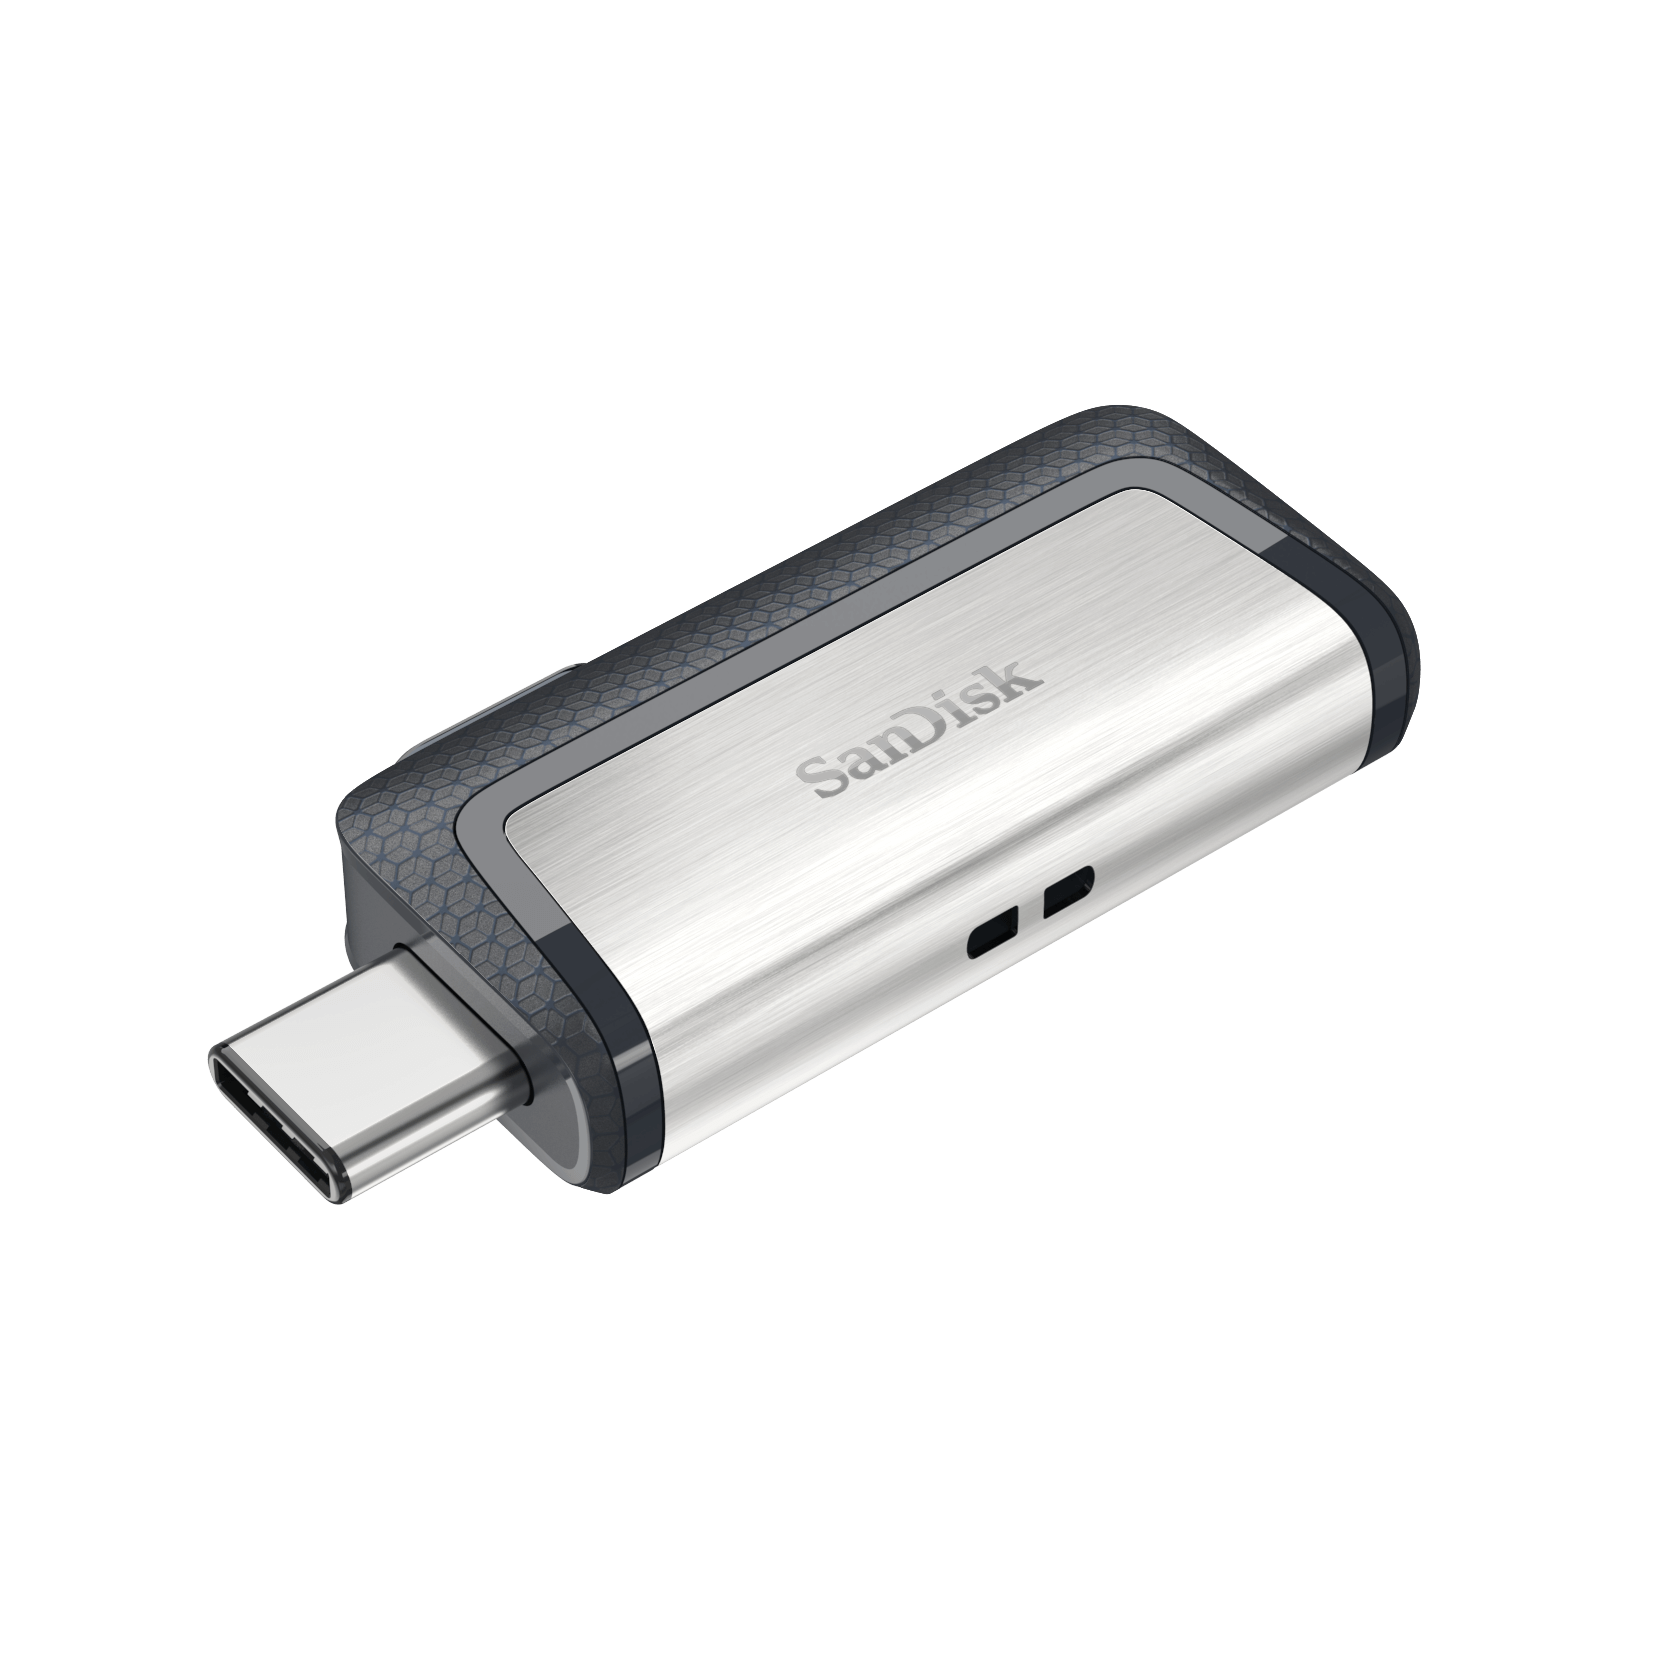 microUSB USB 3.0 SanDisk 256GB Ultra Dual Drive m3.0 for Android Devices and Computers SDDD3-256G-G46